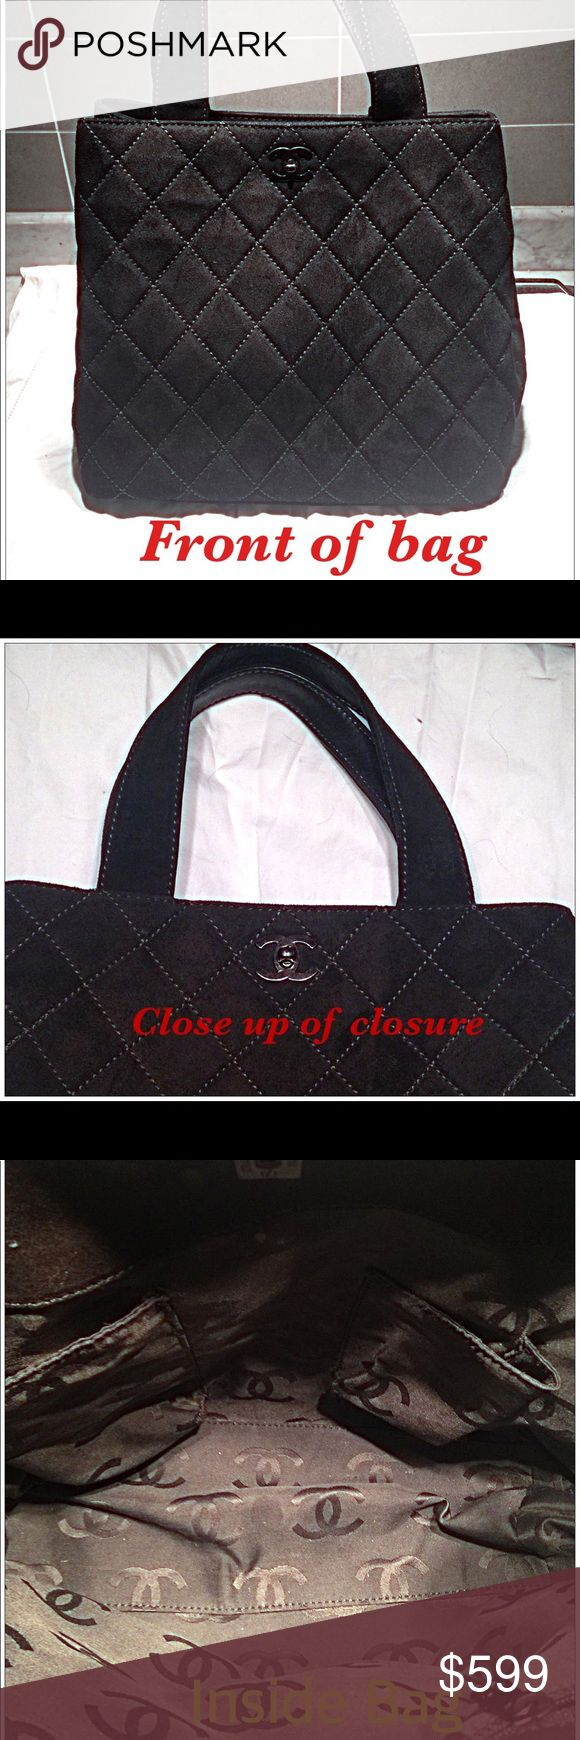 Chanel: Authentic Quilted Suede Shoulder Bag Preloved quilted suede shoulder bag with turn lock closure. All pictures PROVE AUTHENTICITY! Very roomy & super clean inside. Zippered pocket on one side where you will find authenticity tag. Double pockets on the other side. Brass studs on the bottom protect it when standing. It was brown but professionally died several years ago. Comes with Chanel dust bag. Open to reasonable offers though already at a great price. Happy to answer questions. No…